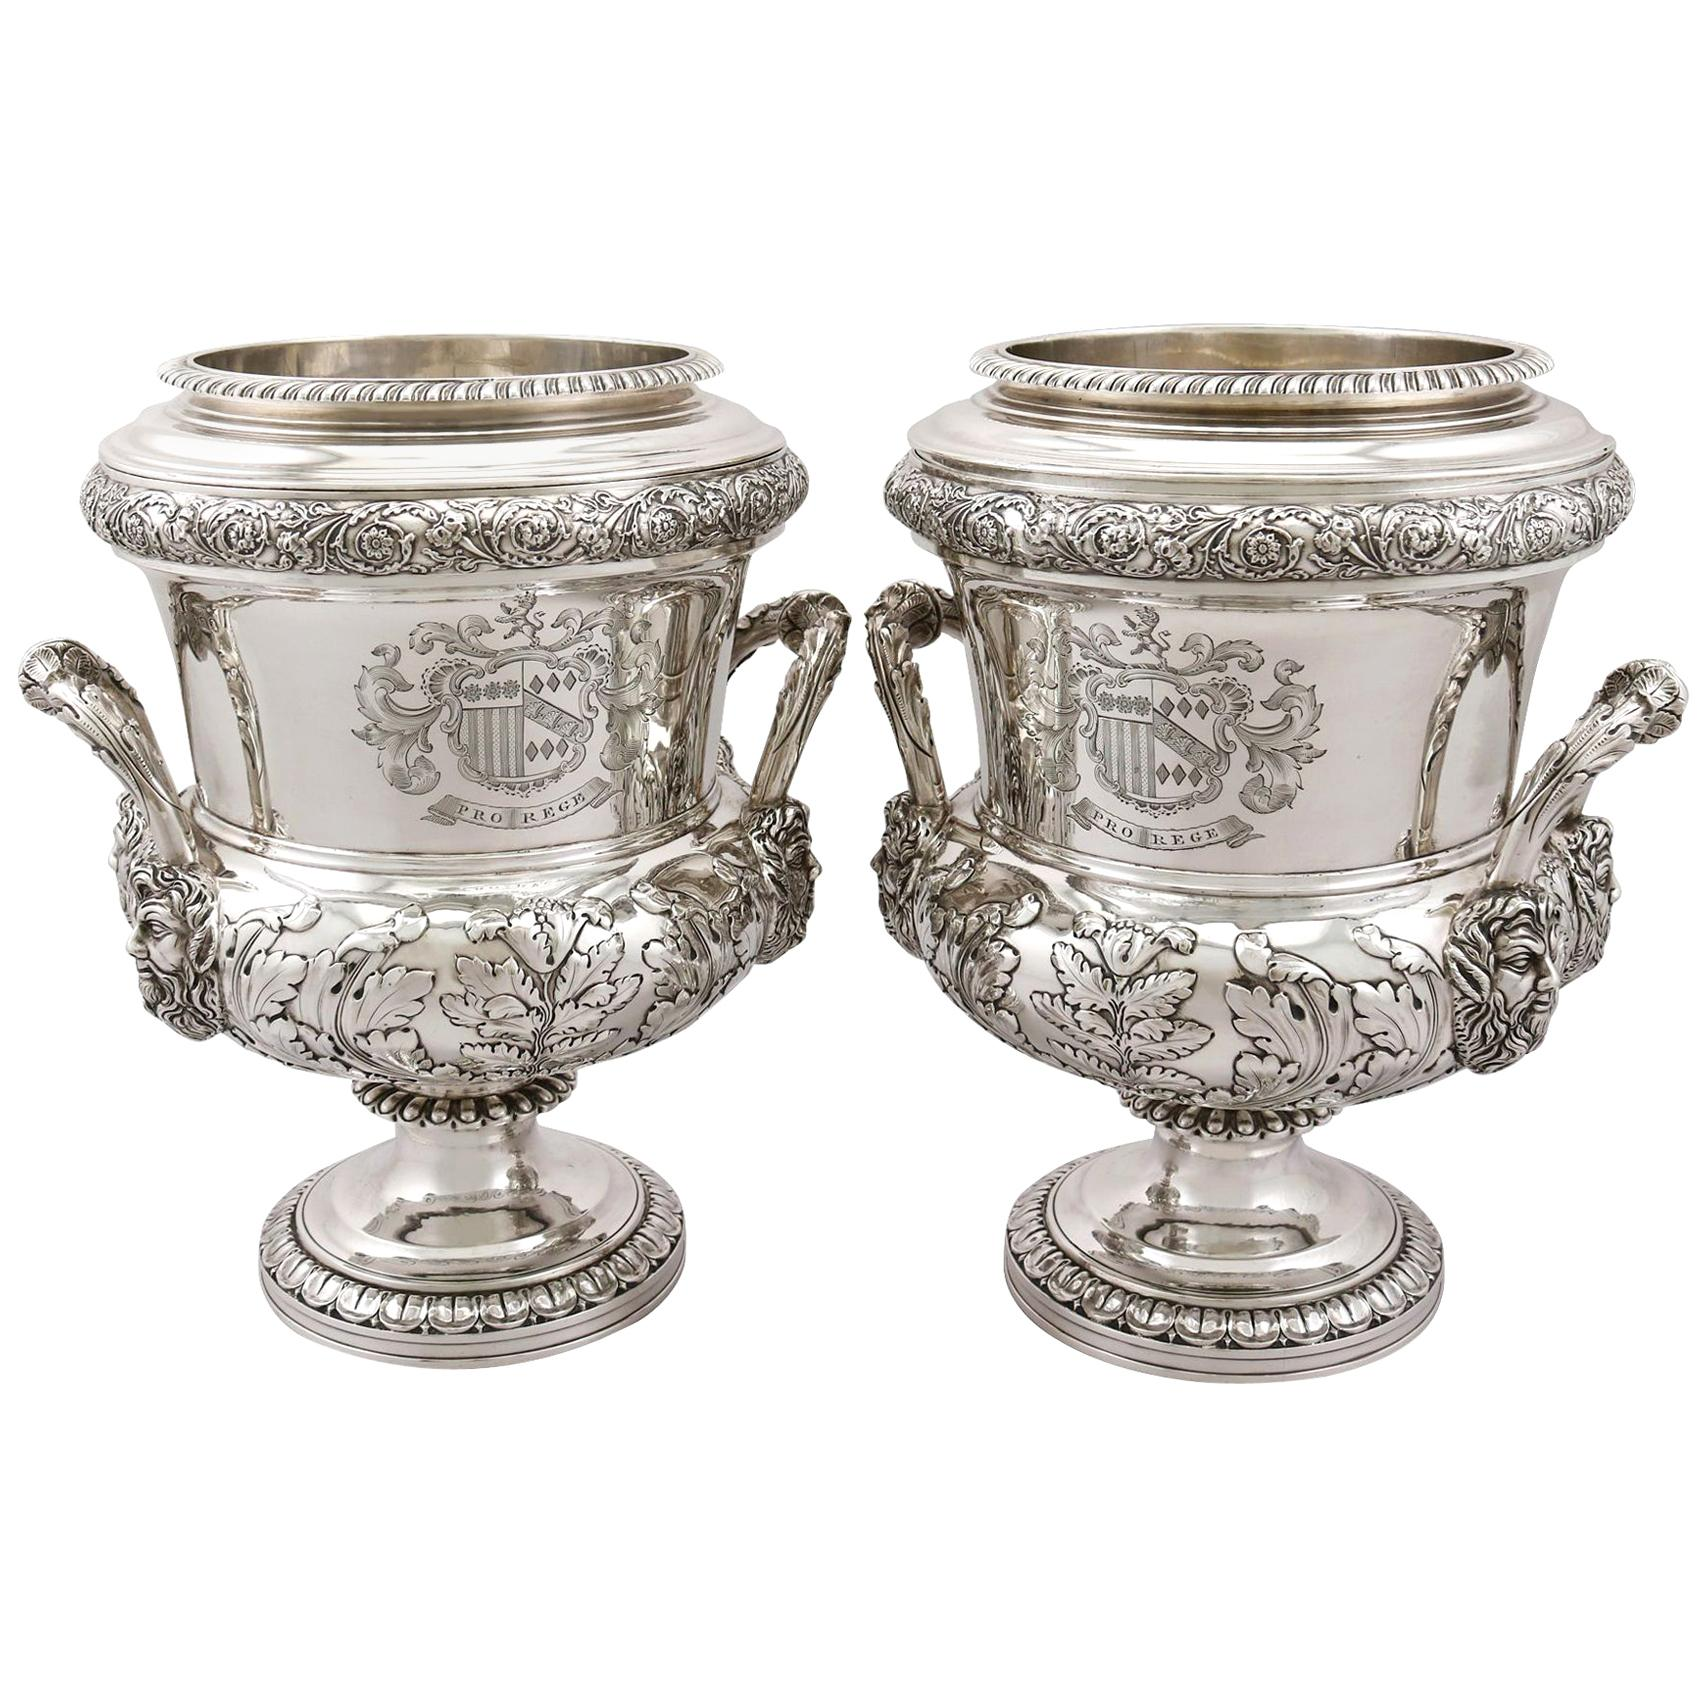 1816 Antique Georgian Sterling Silver Wine Coolers